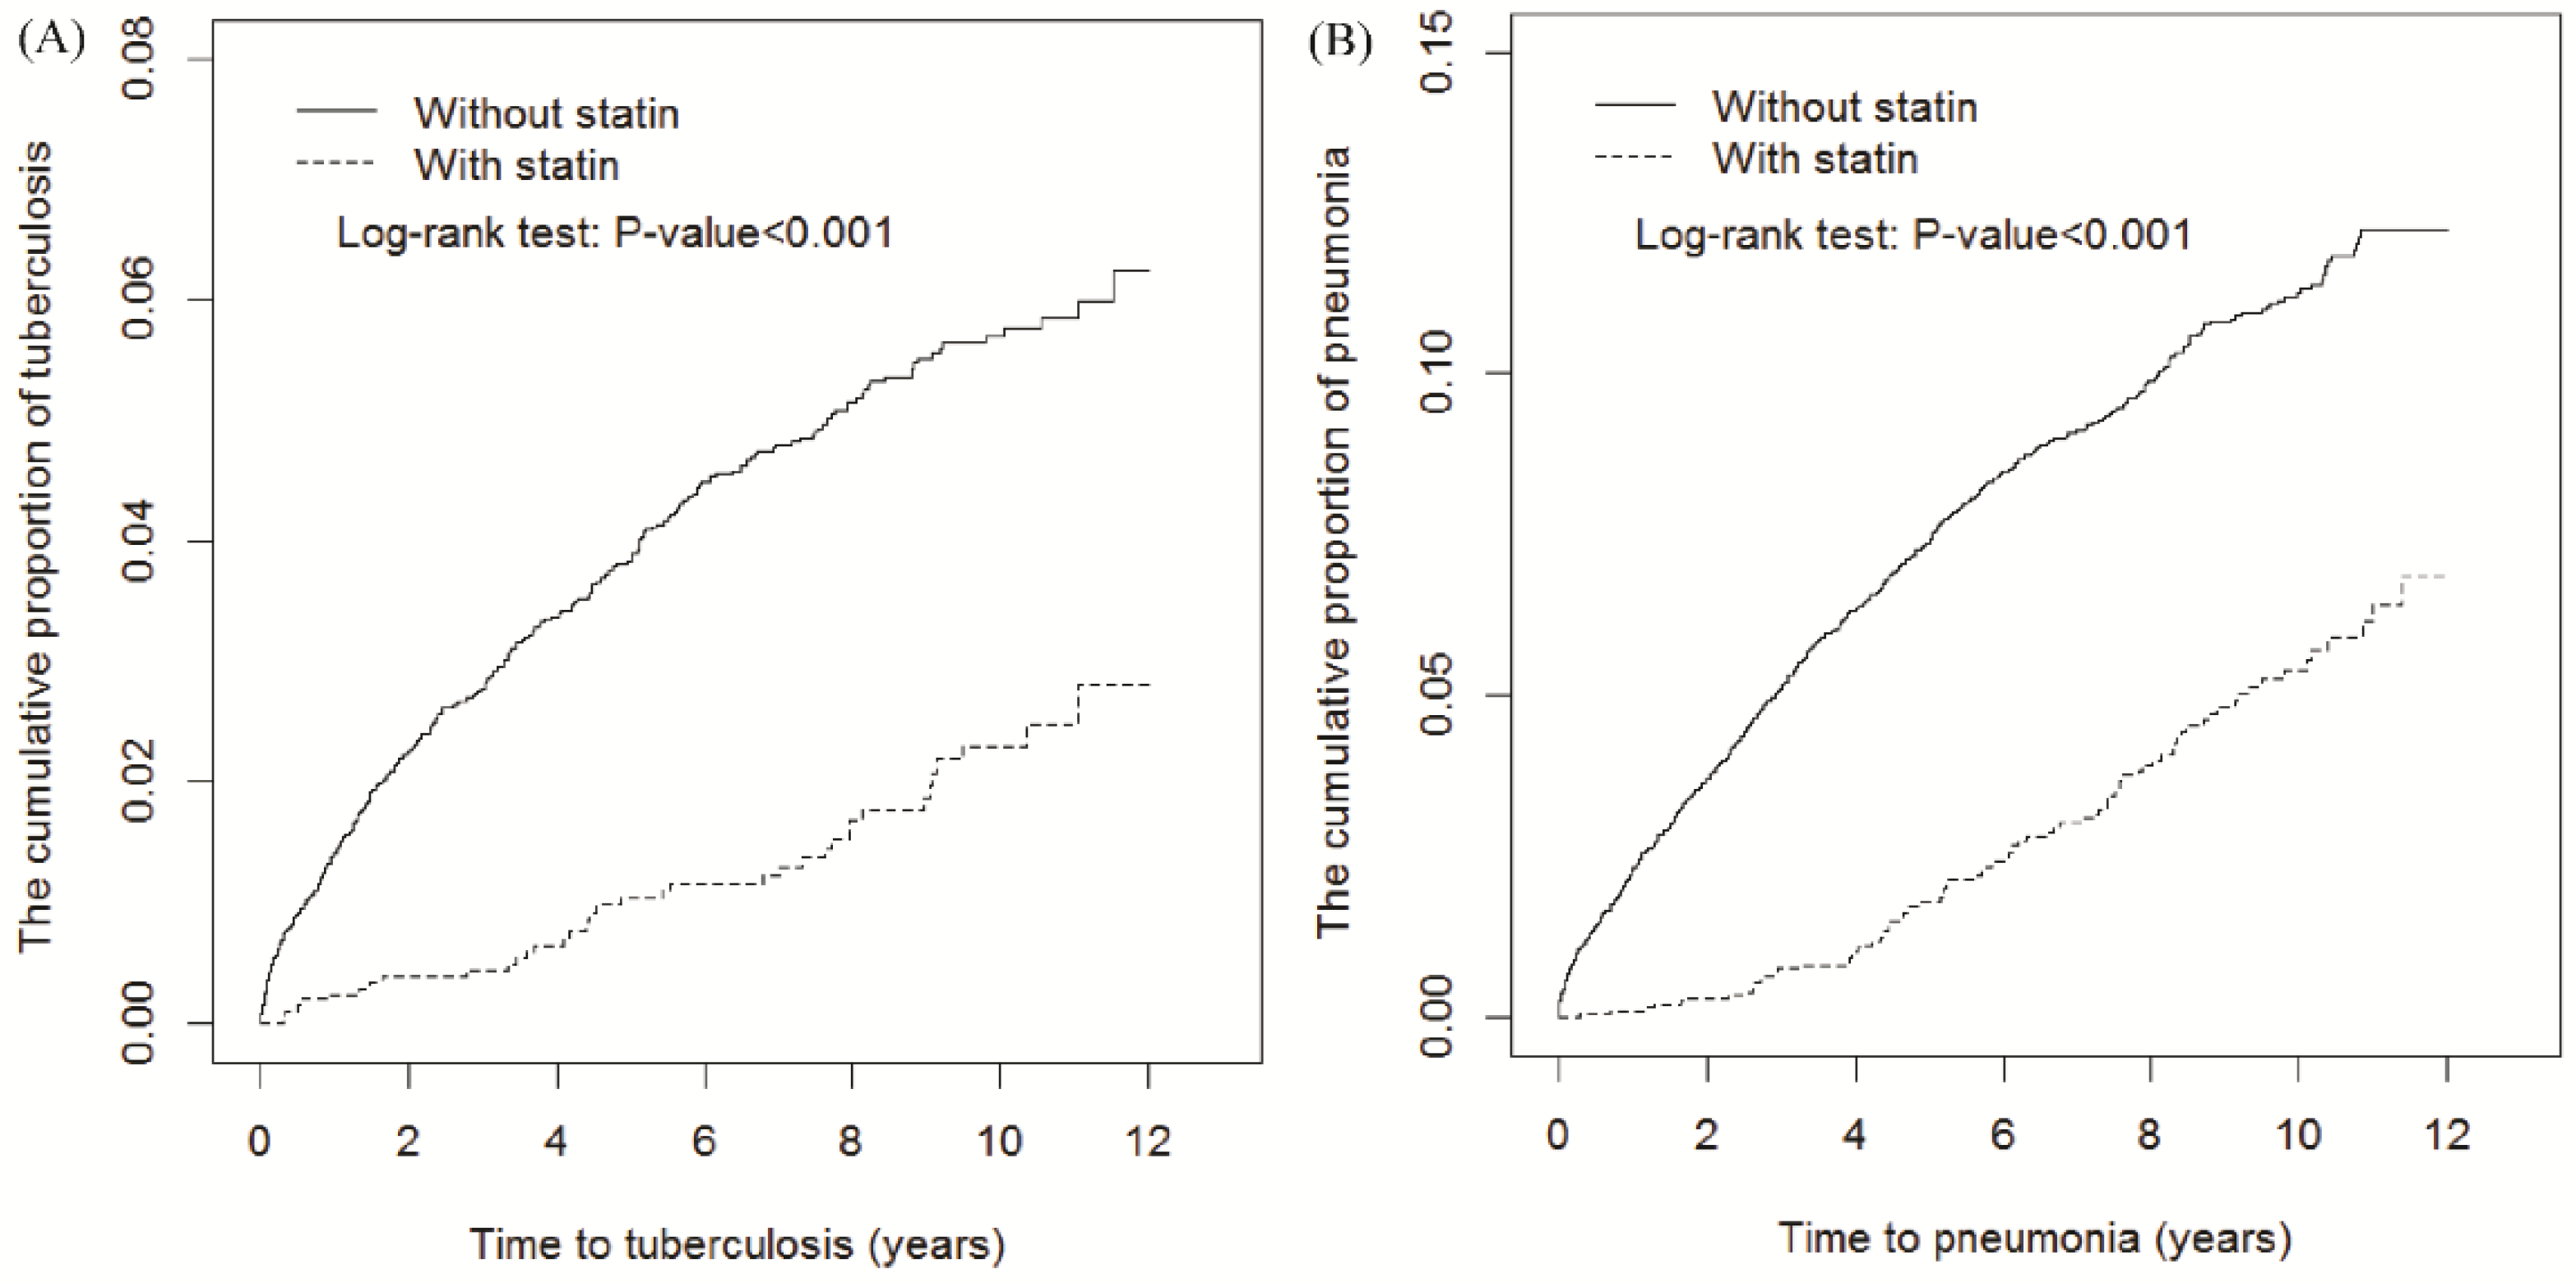 JCM | Free Full-Text | Statin for Tuberculosis and Pneumonia in